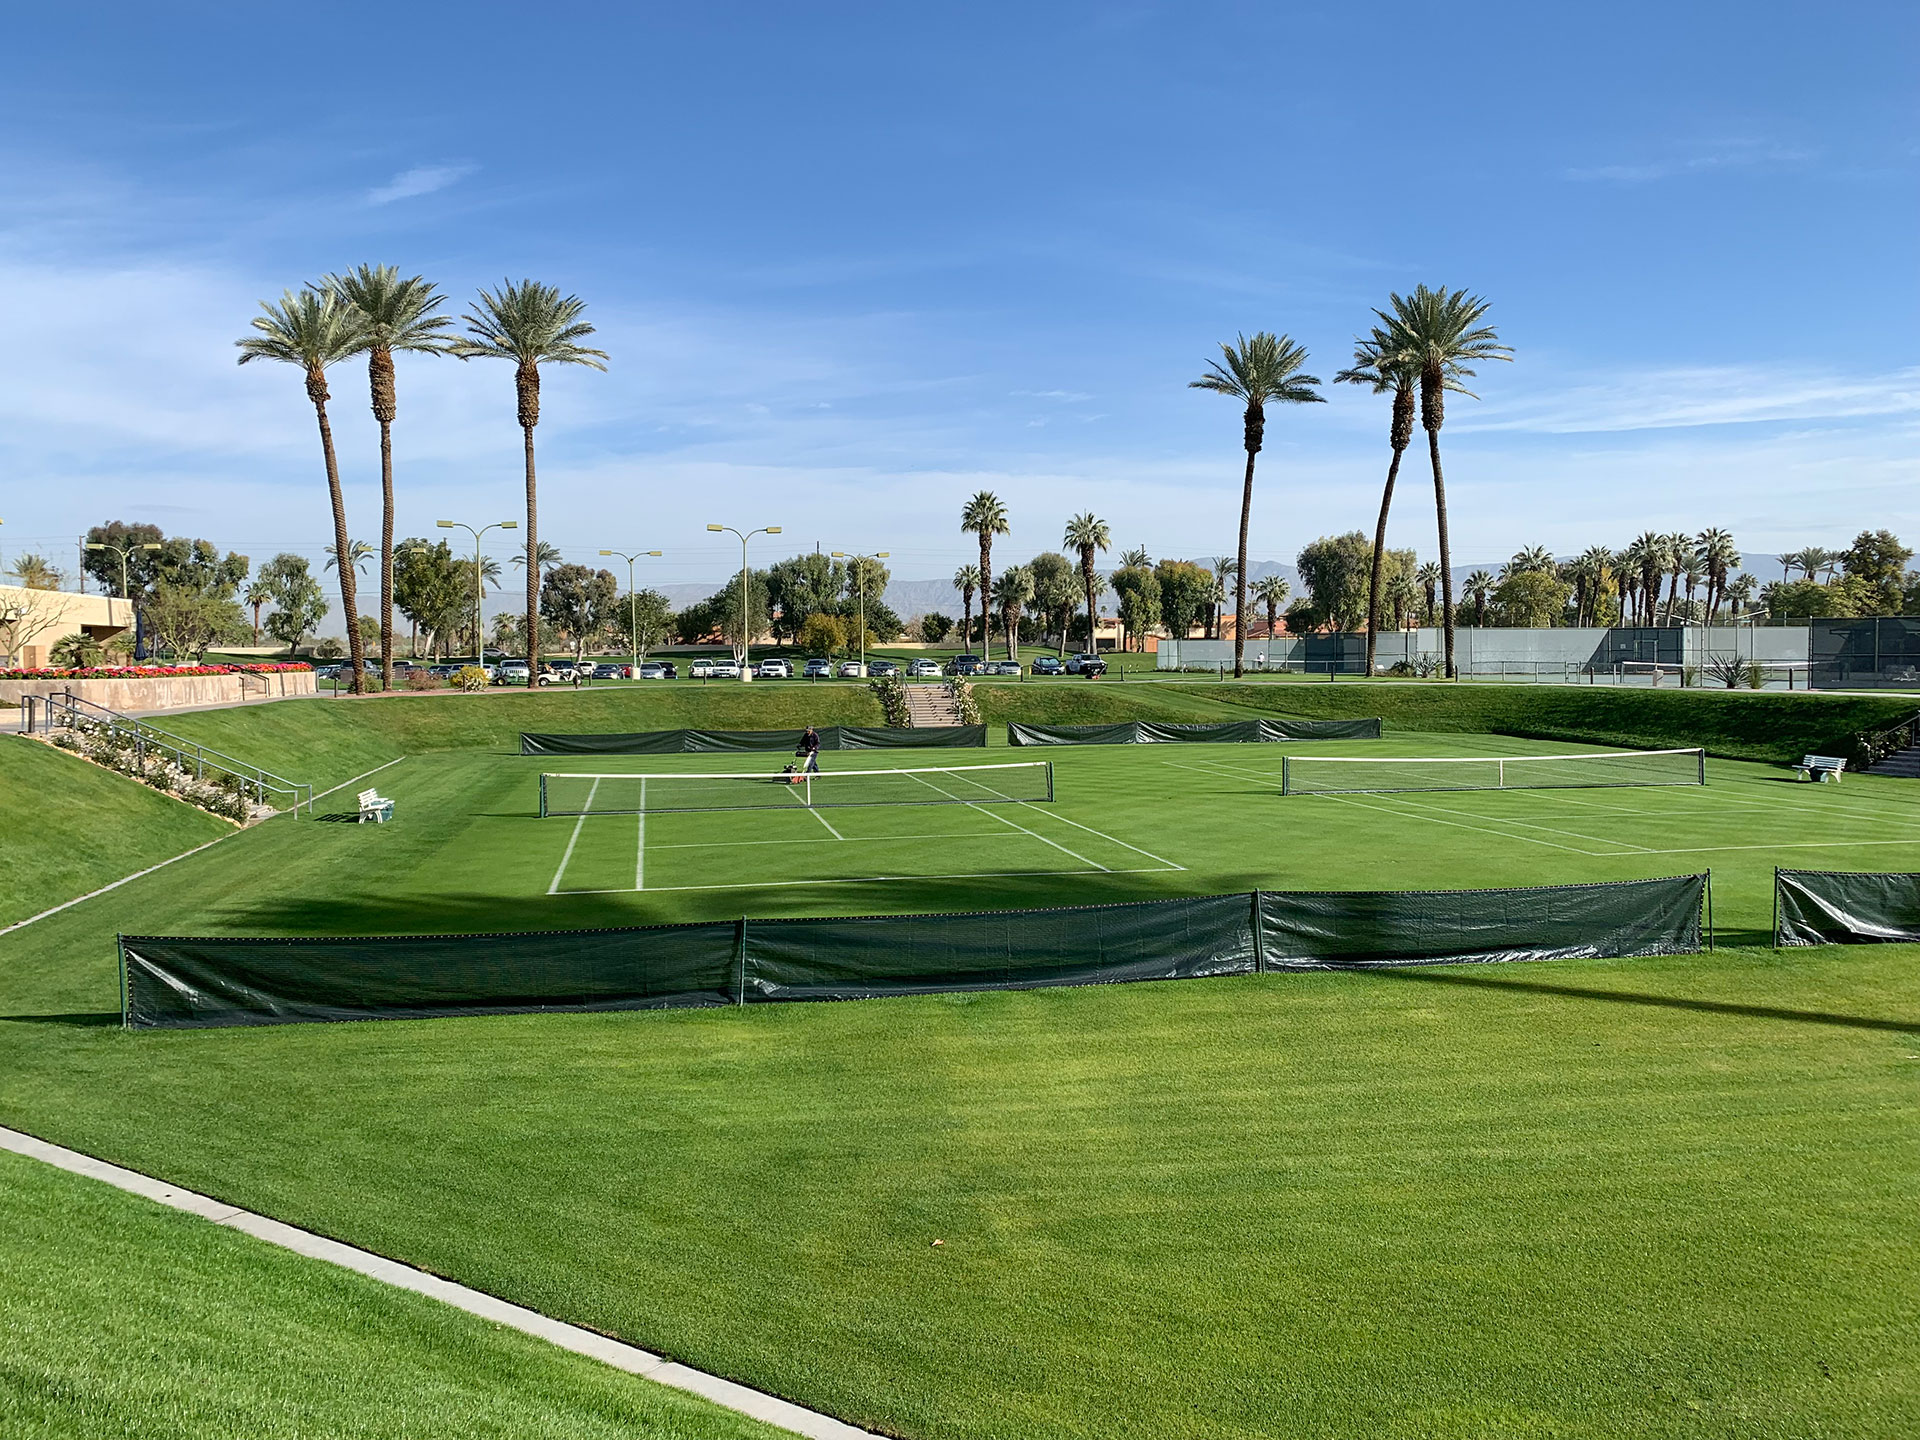 Desert Springs PBI Tennis Club 3